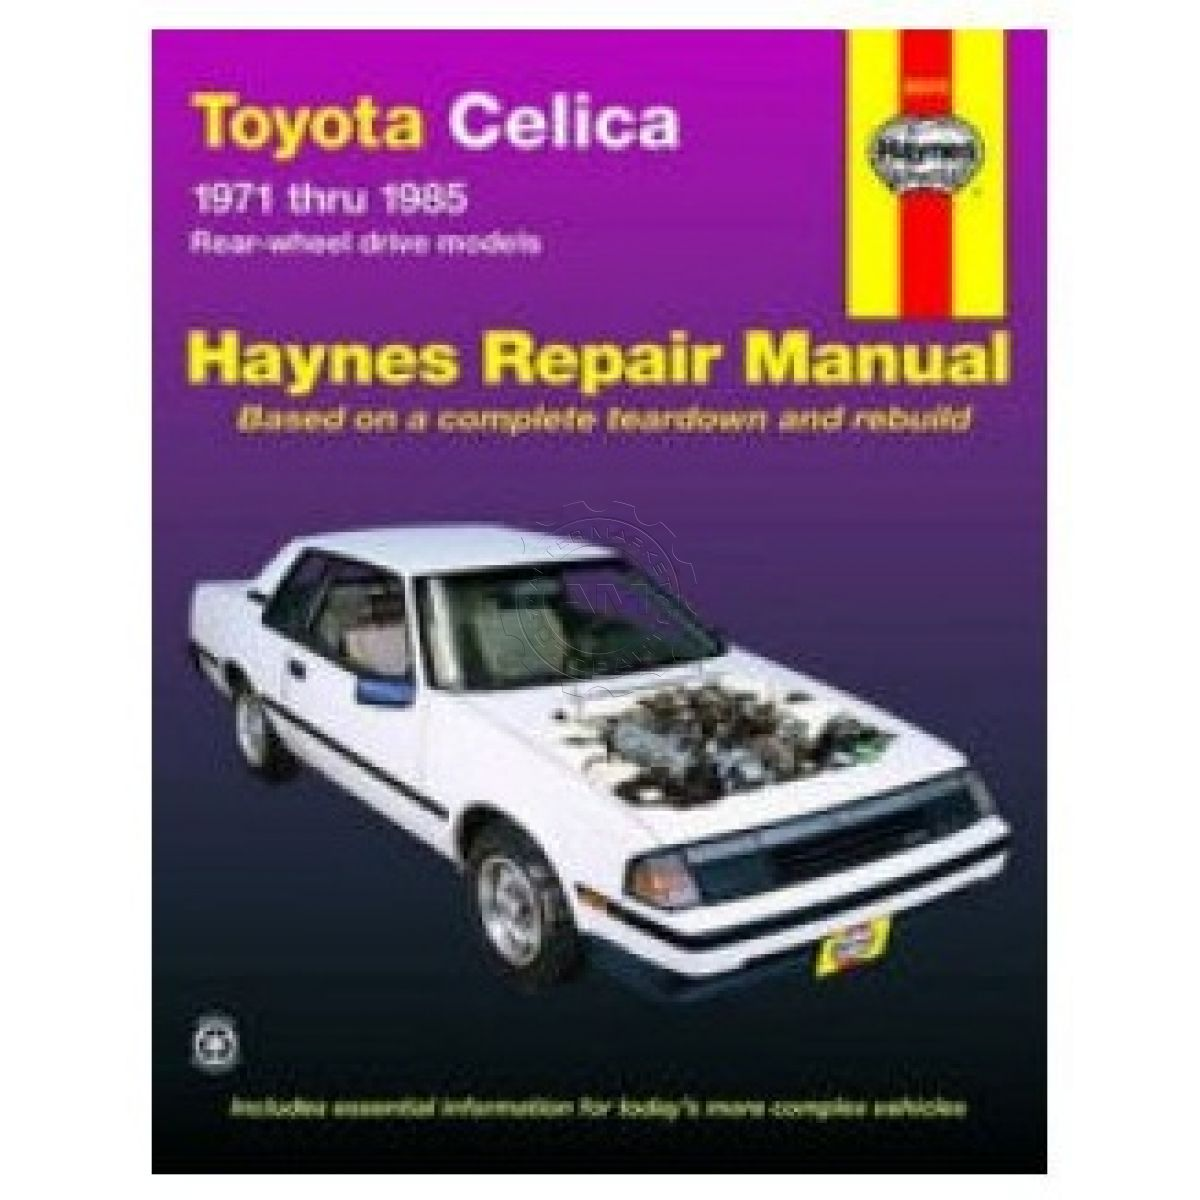 Haynes Repair Manual for Toyota Celica 71-81 82 83 84 85